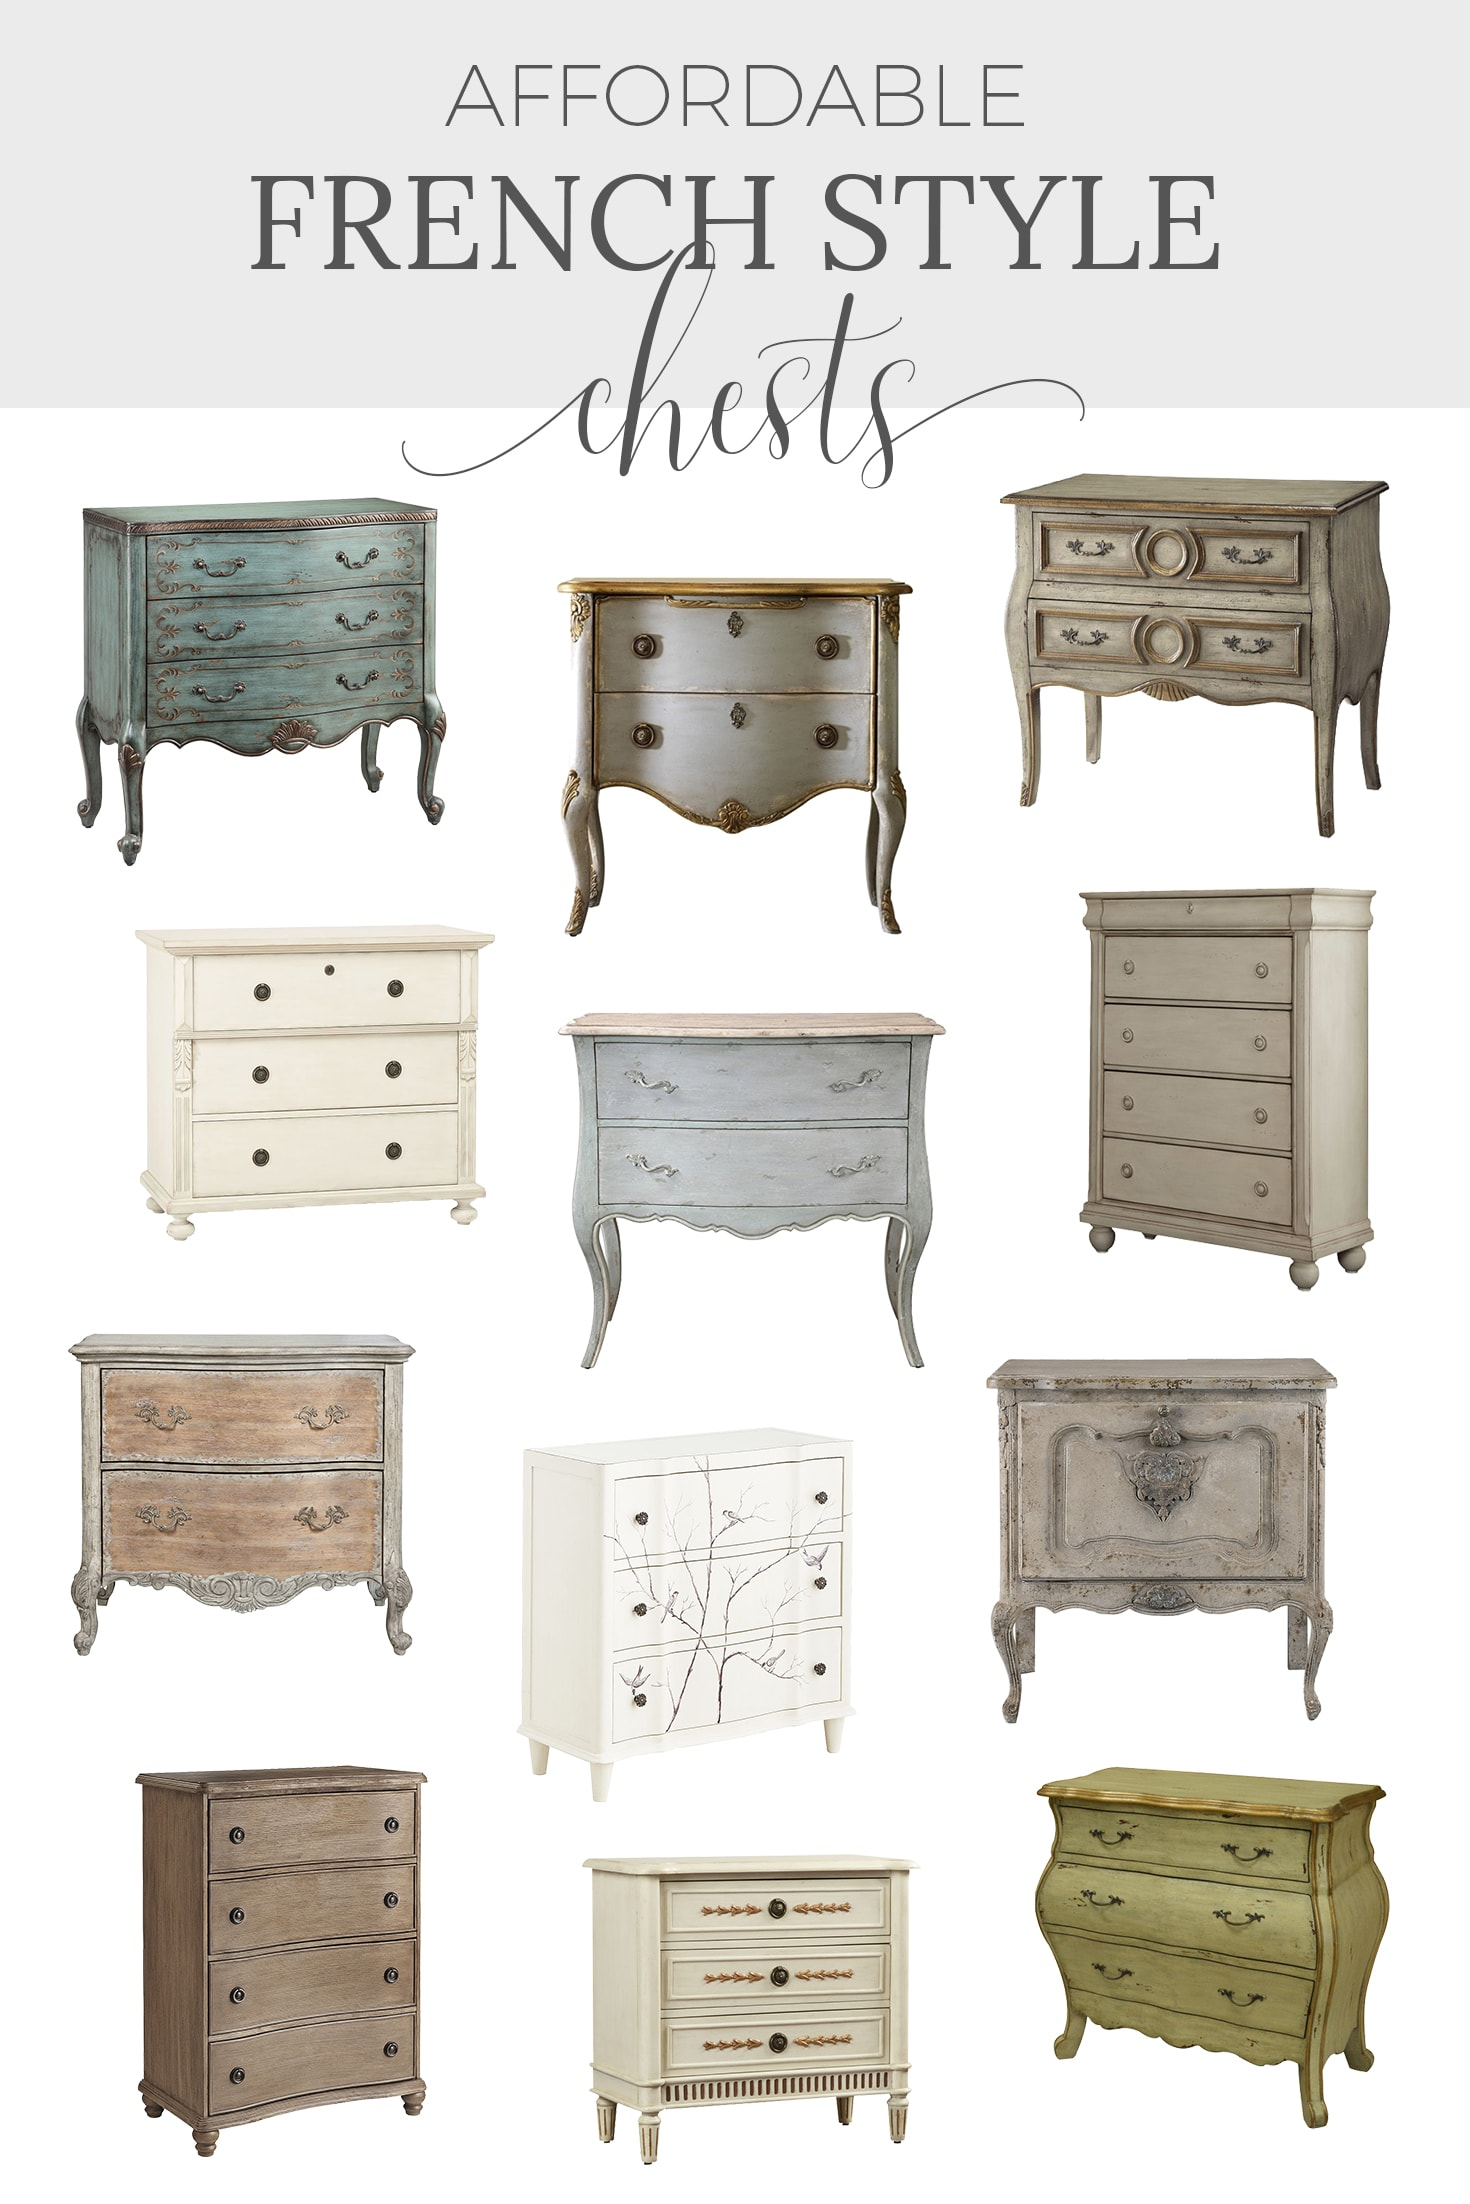 French chests of drawers